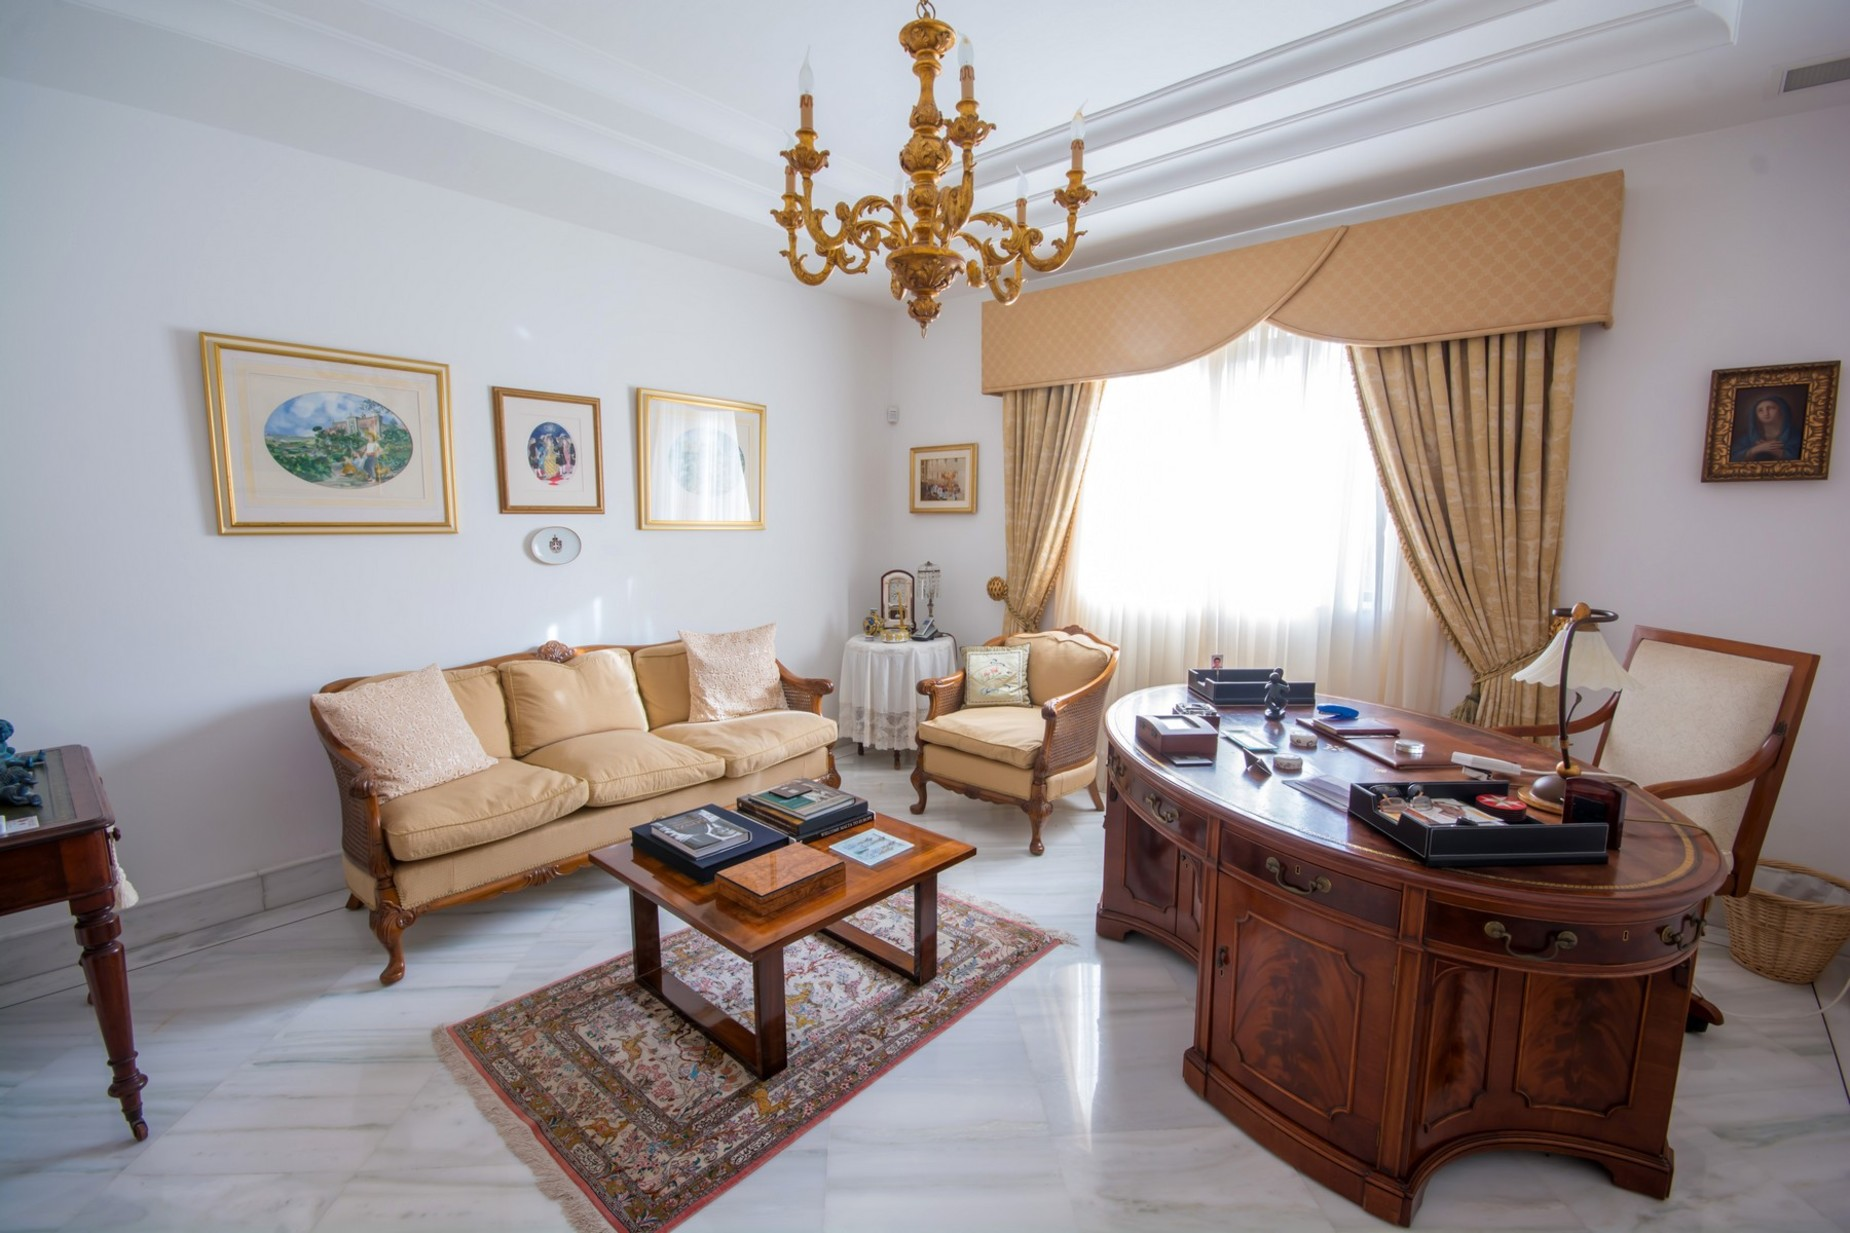 4 bed Villa For Sale in Rabat, Rabat - thumb 11